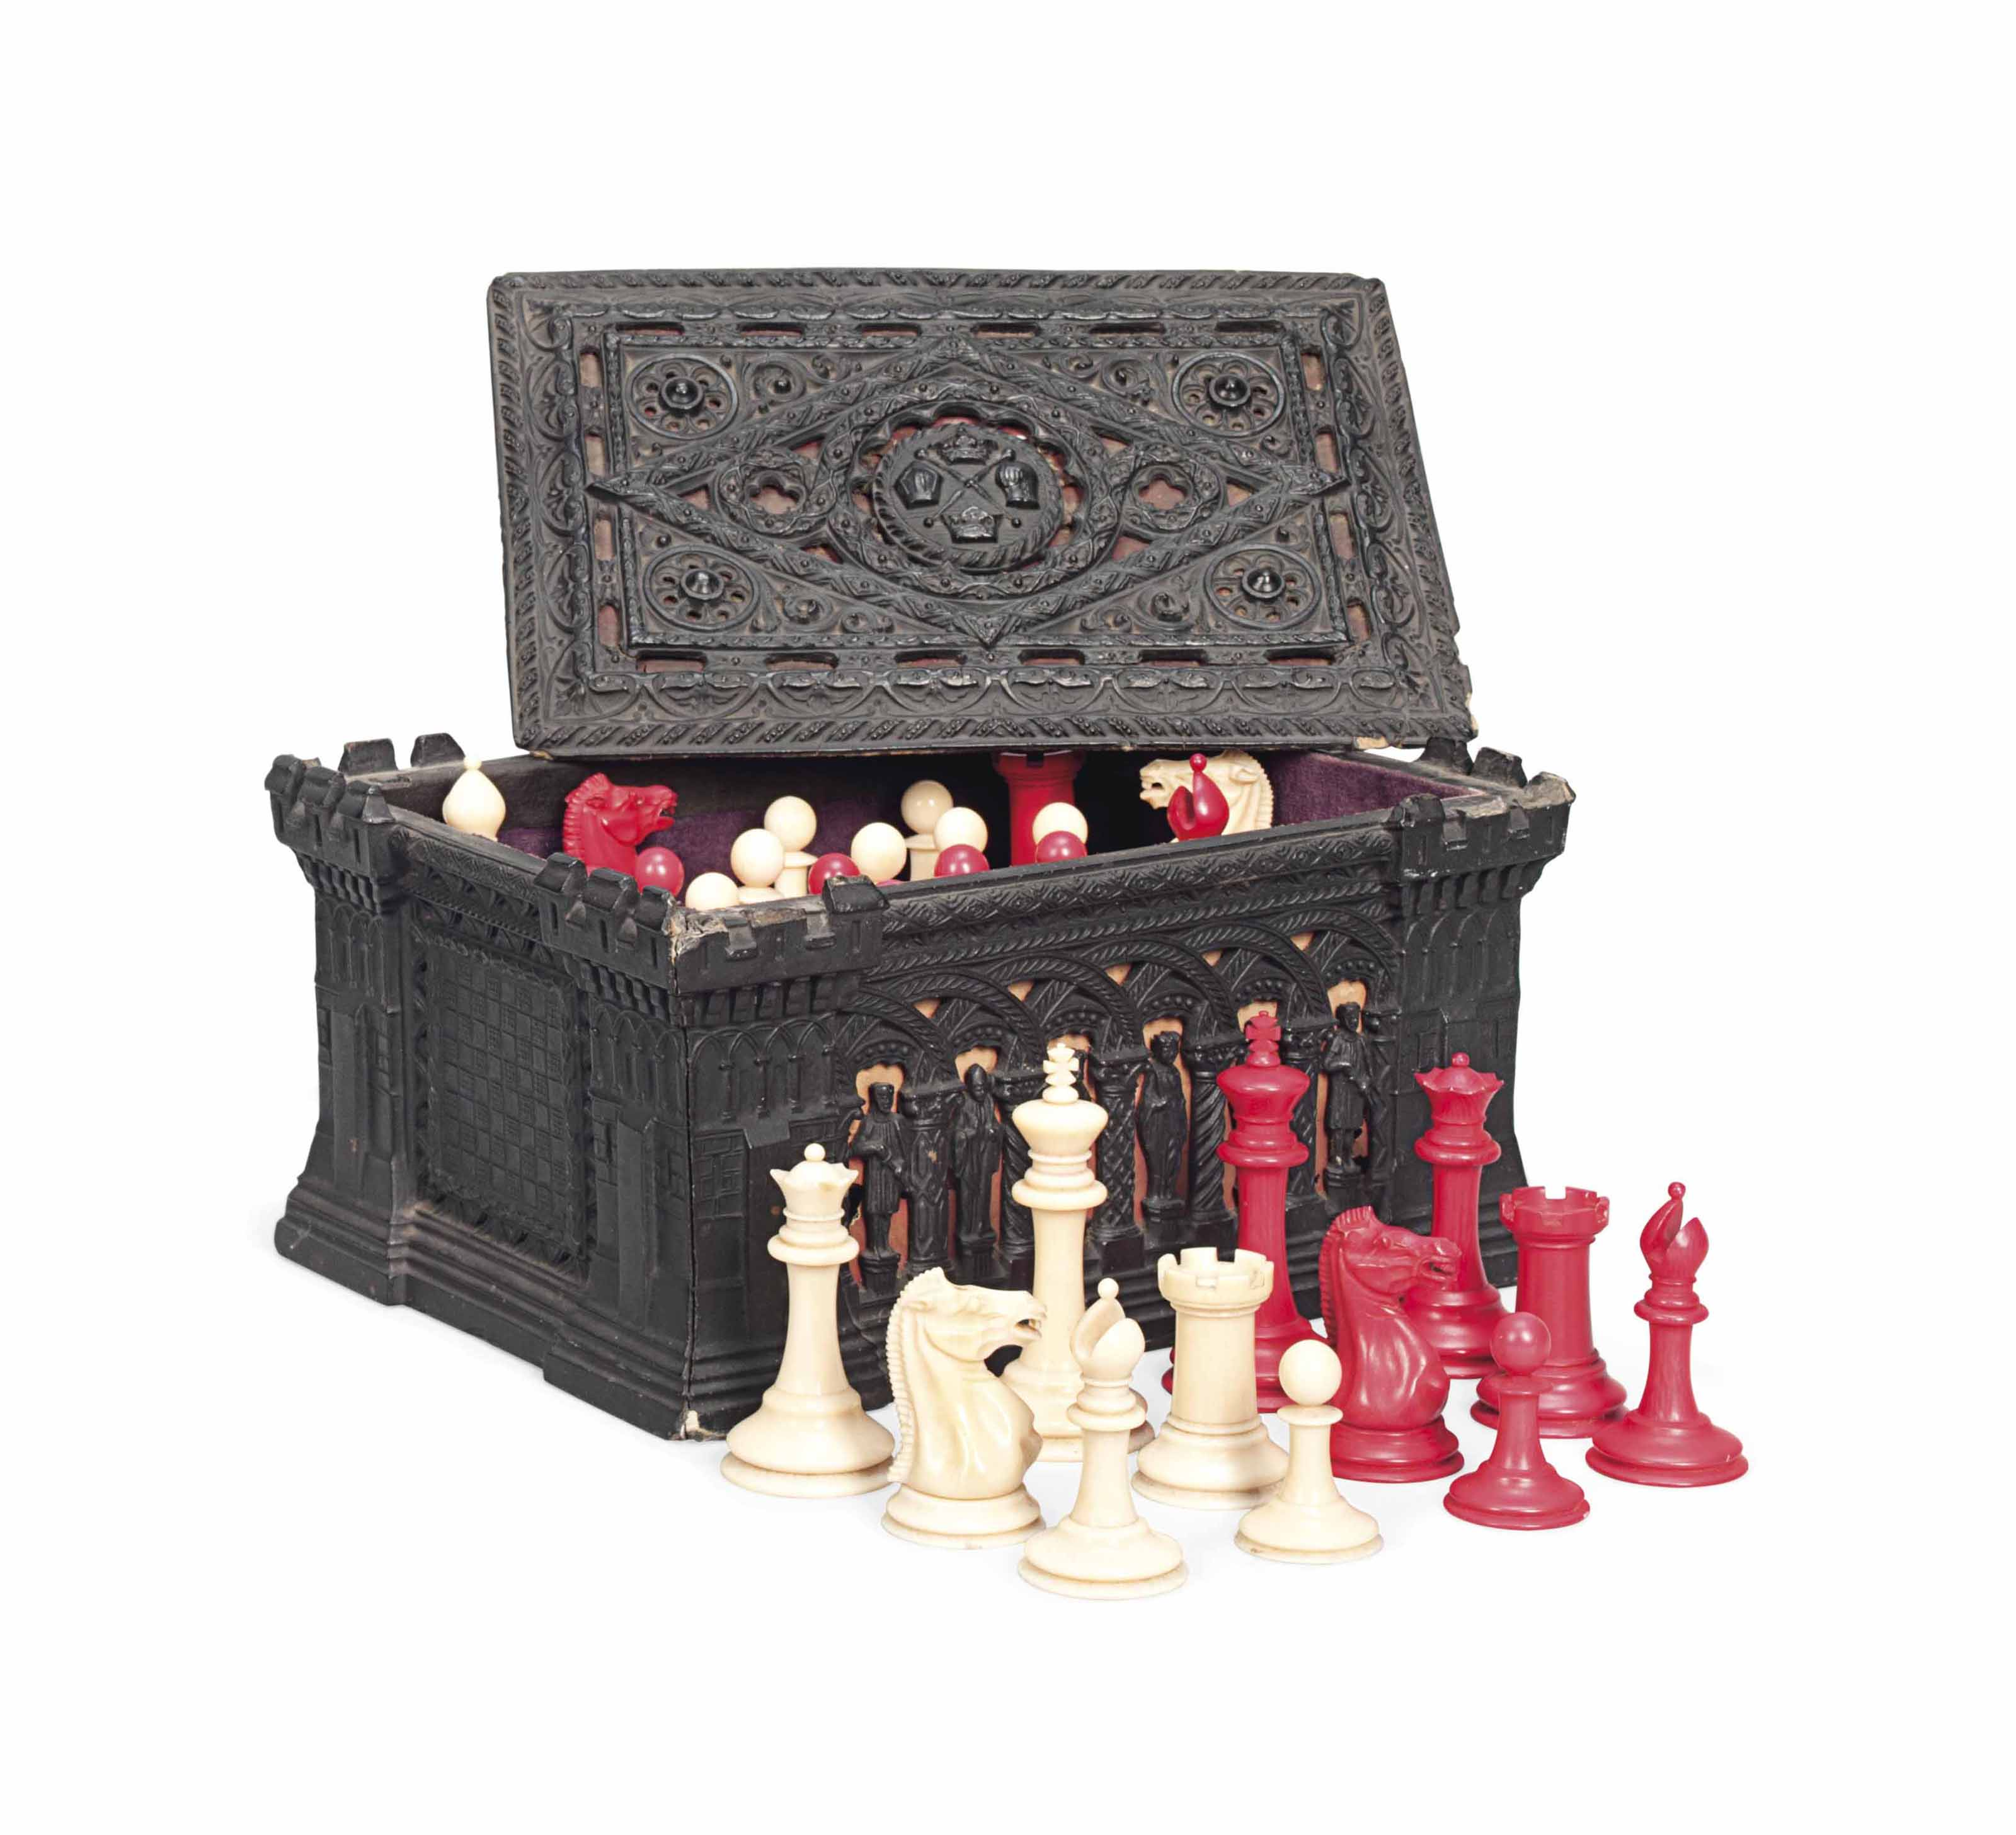 A JAQUES STAUNTON IVORY CHESS